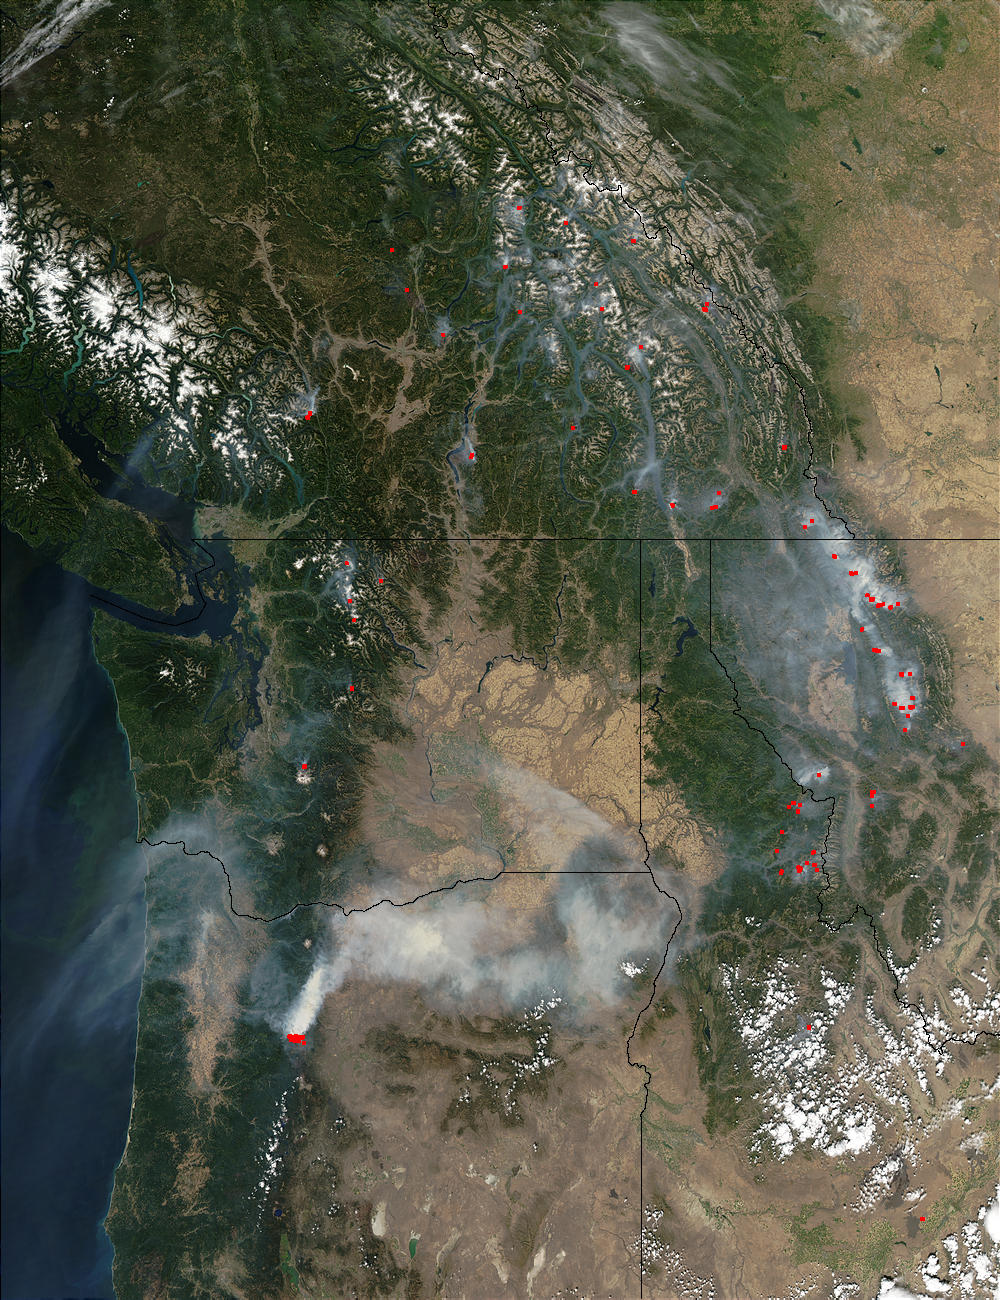 Image of Aqua/MODIS 2003/245 20:55 UTC Fires and smoke in the Pacific Northwest, Pixel size 1km